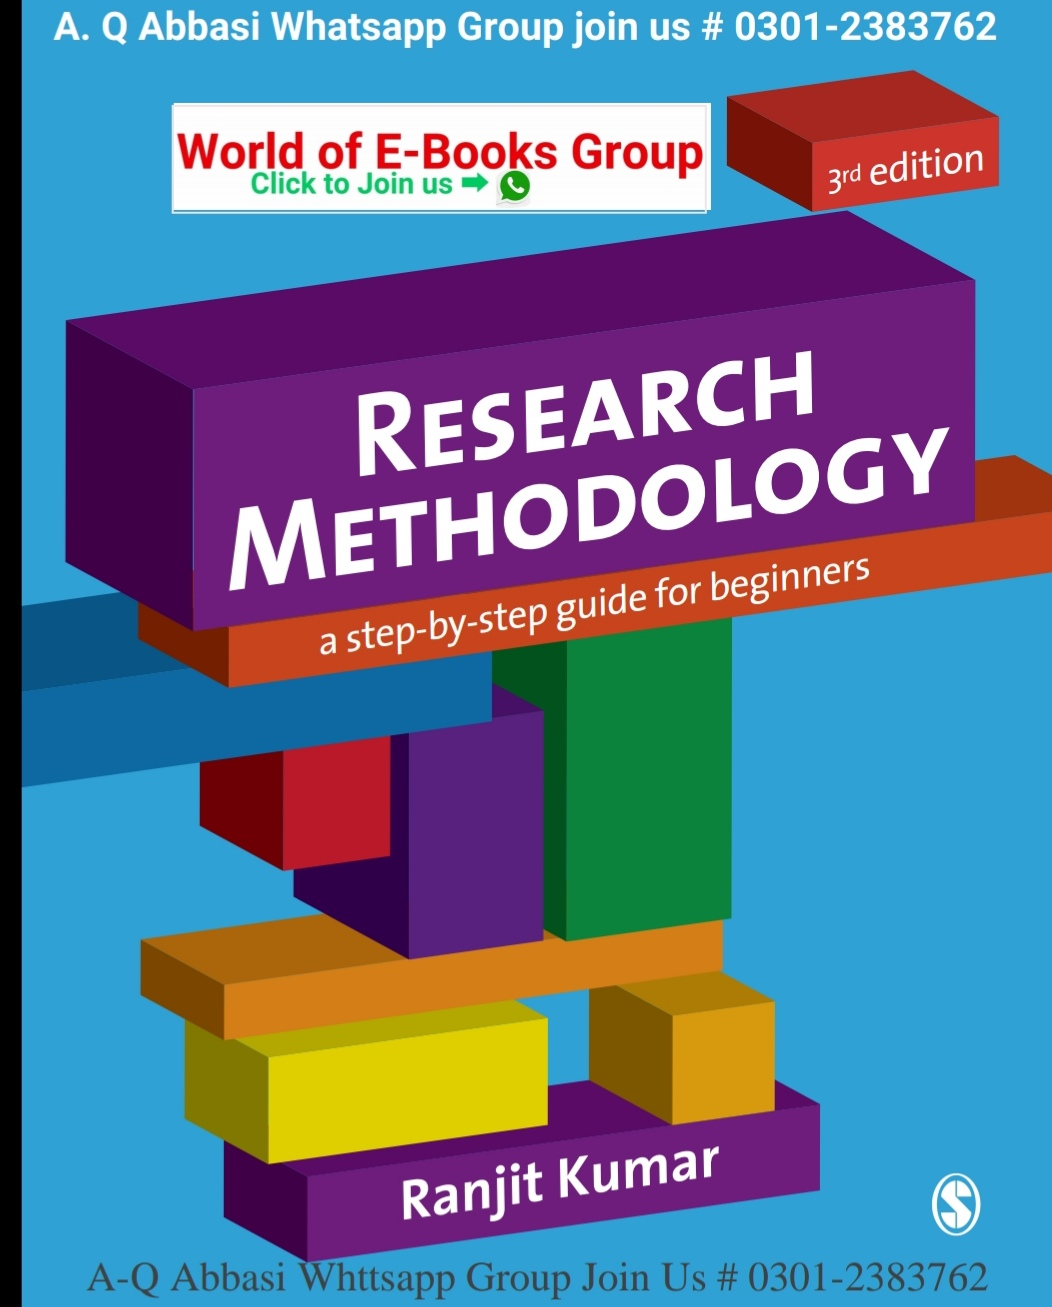 Research Methodology A Step-by-Step Guide for Beginner's - Top Rated